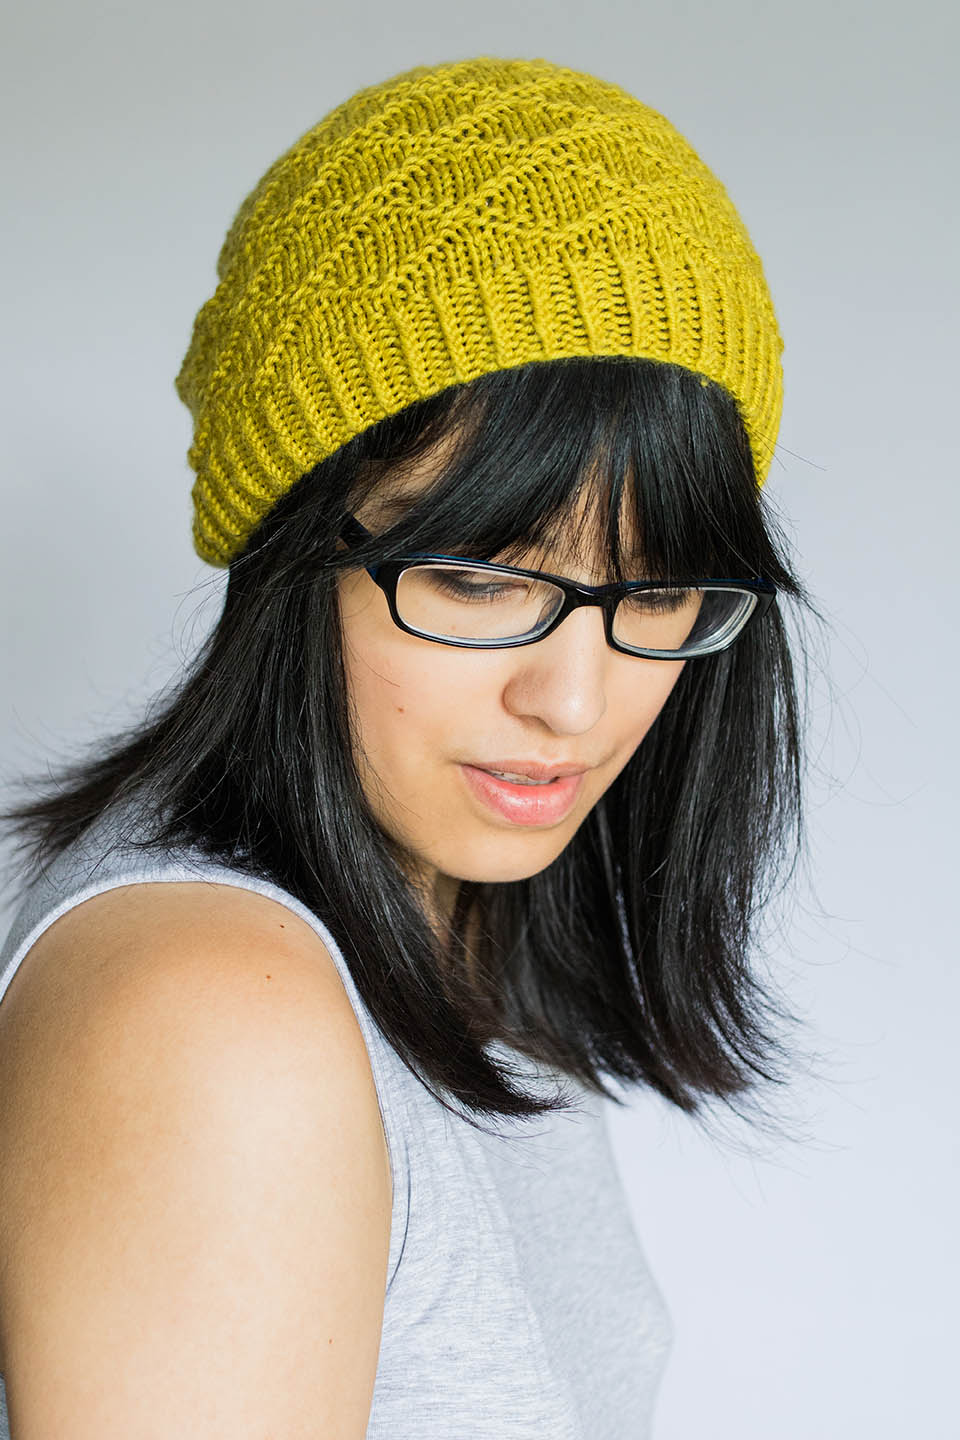 Learn how to design beautiful hats like this during the  Initiate Design Challenge !